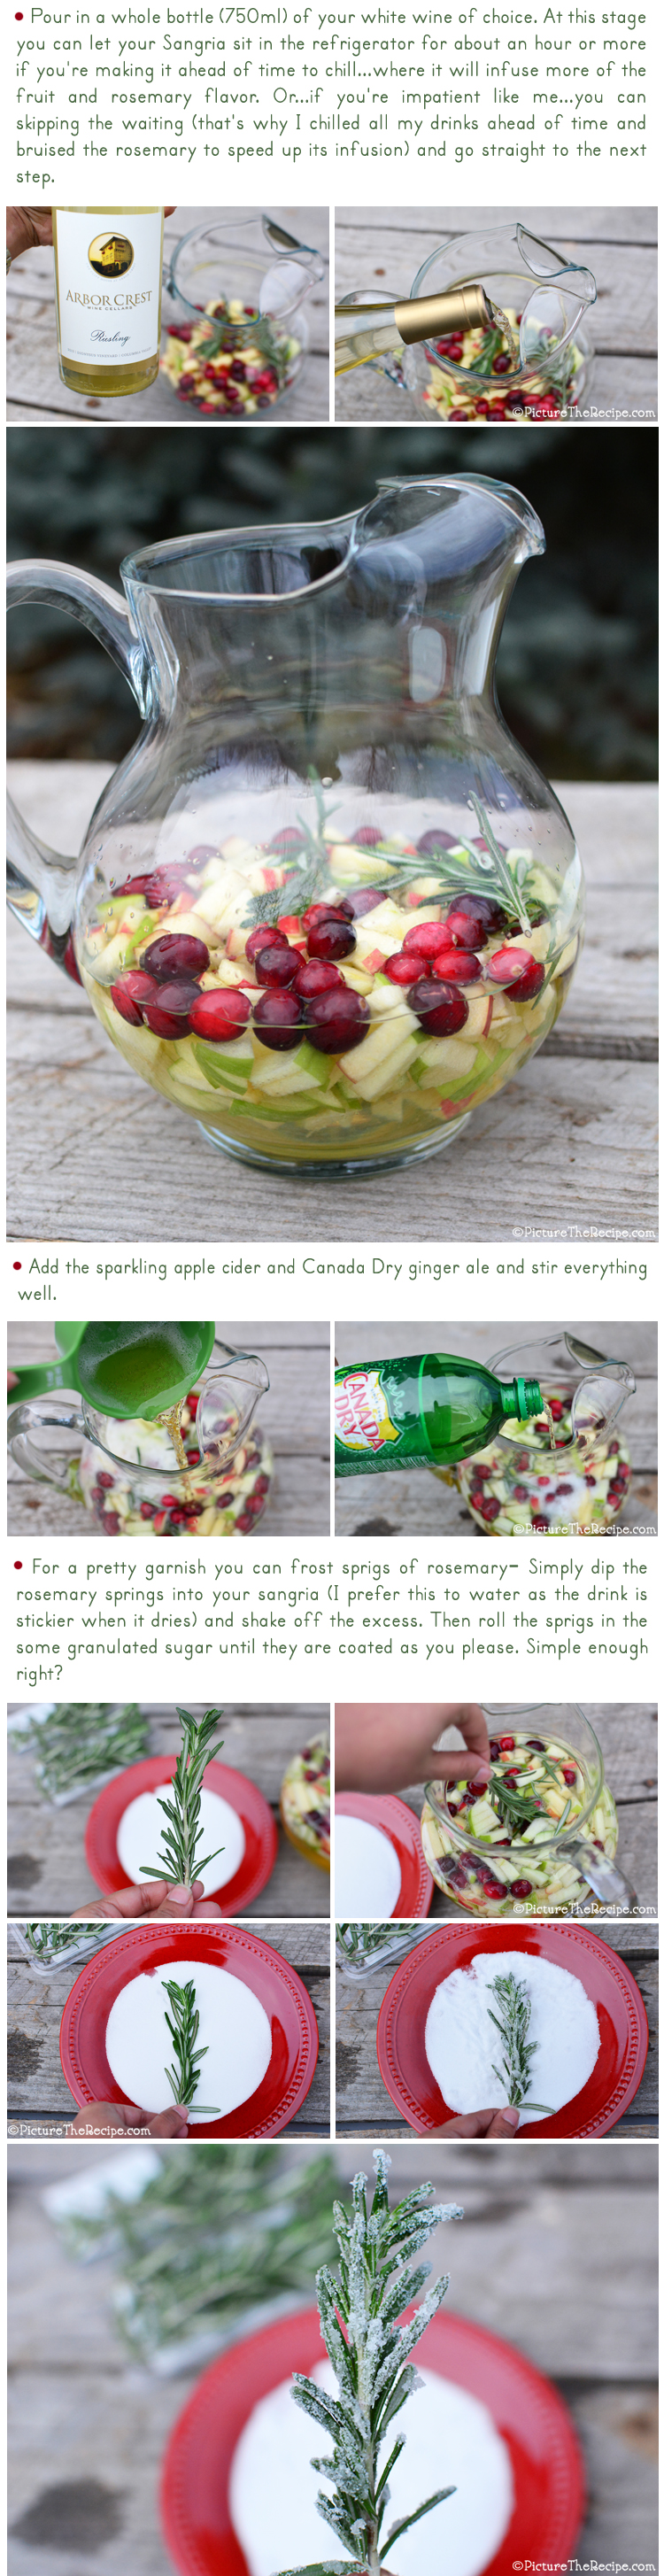 Holiday White Wine Sangria Recipe by PictureTheRecipe- Part 2